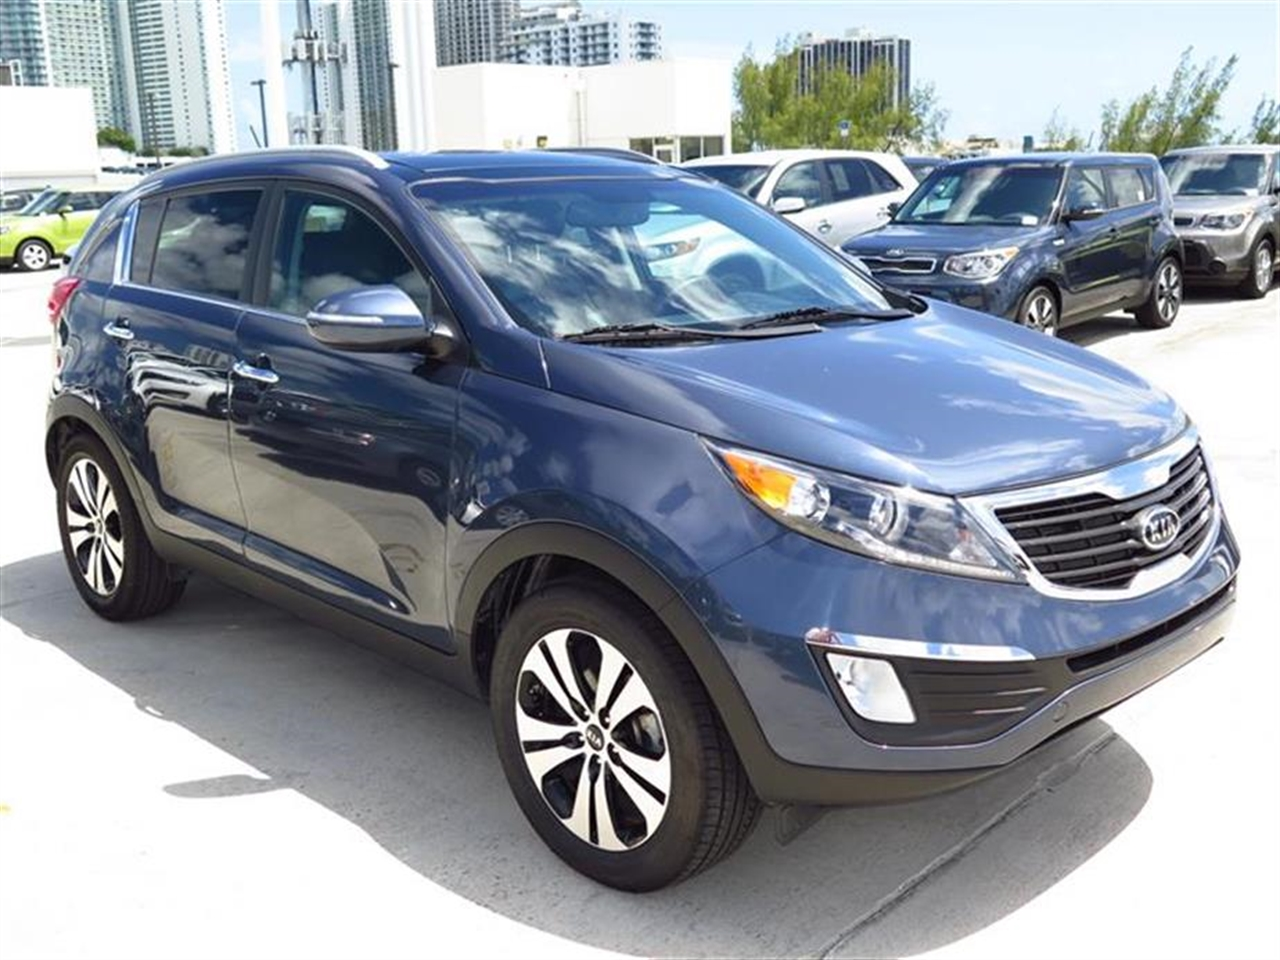 2012 KIA SPORTAGE 2WD 4dr EX 35651 miles 12V pwr outlets -inc 2 front1 rear 6040 split-fo